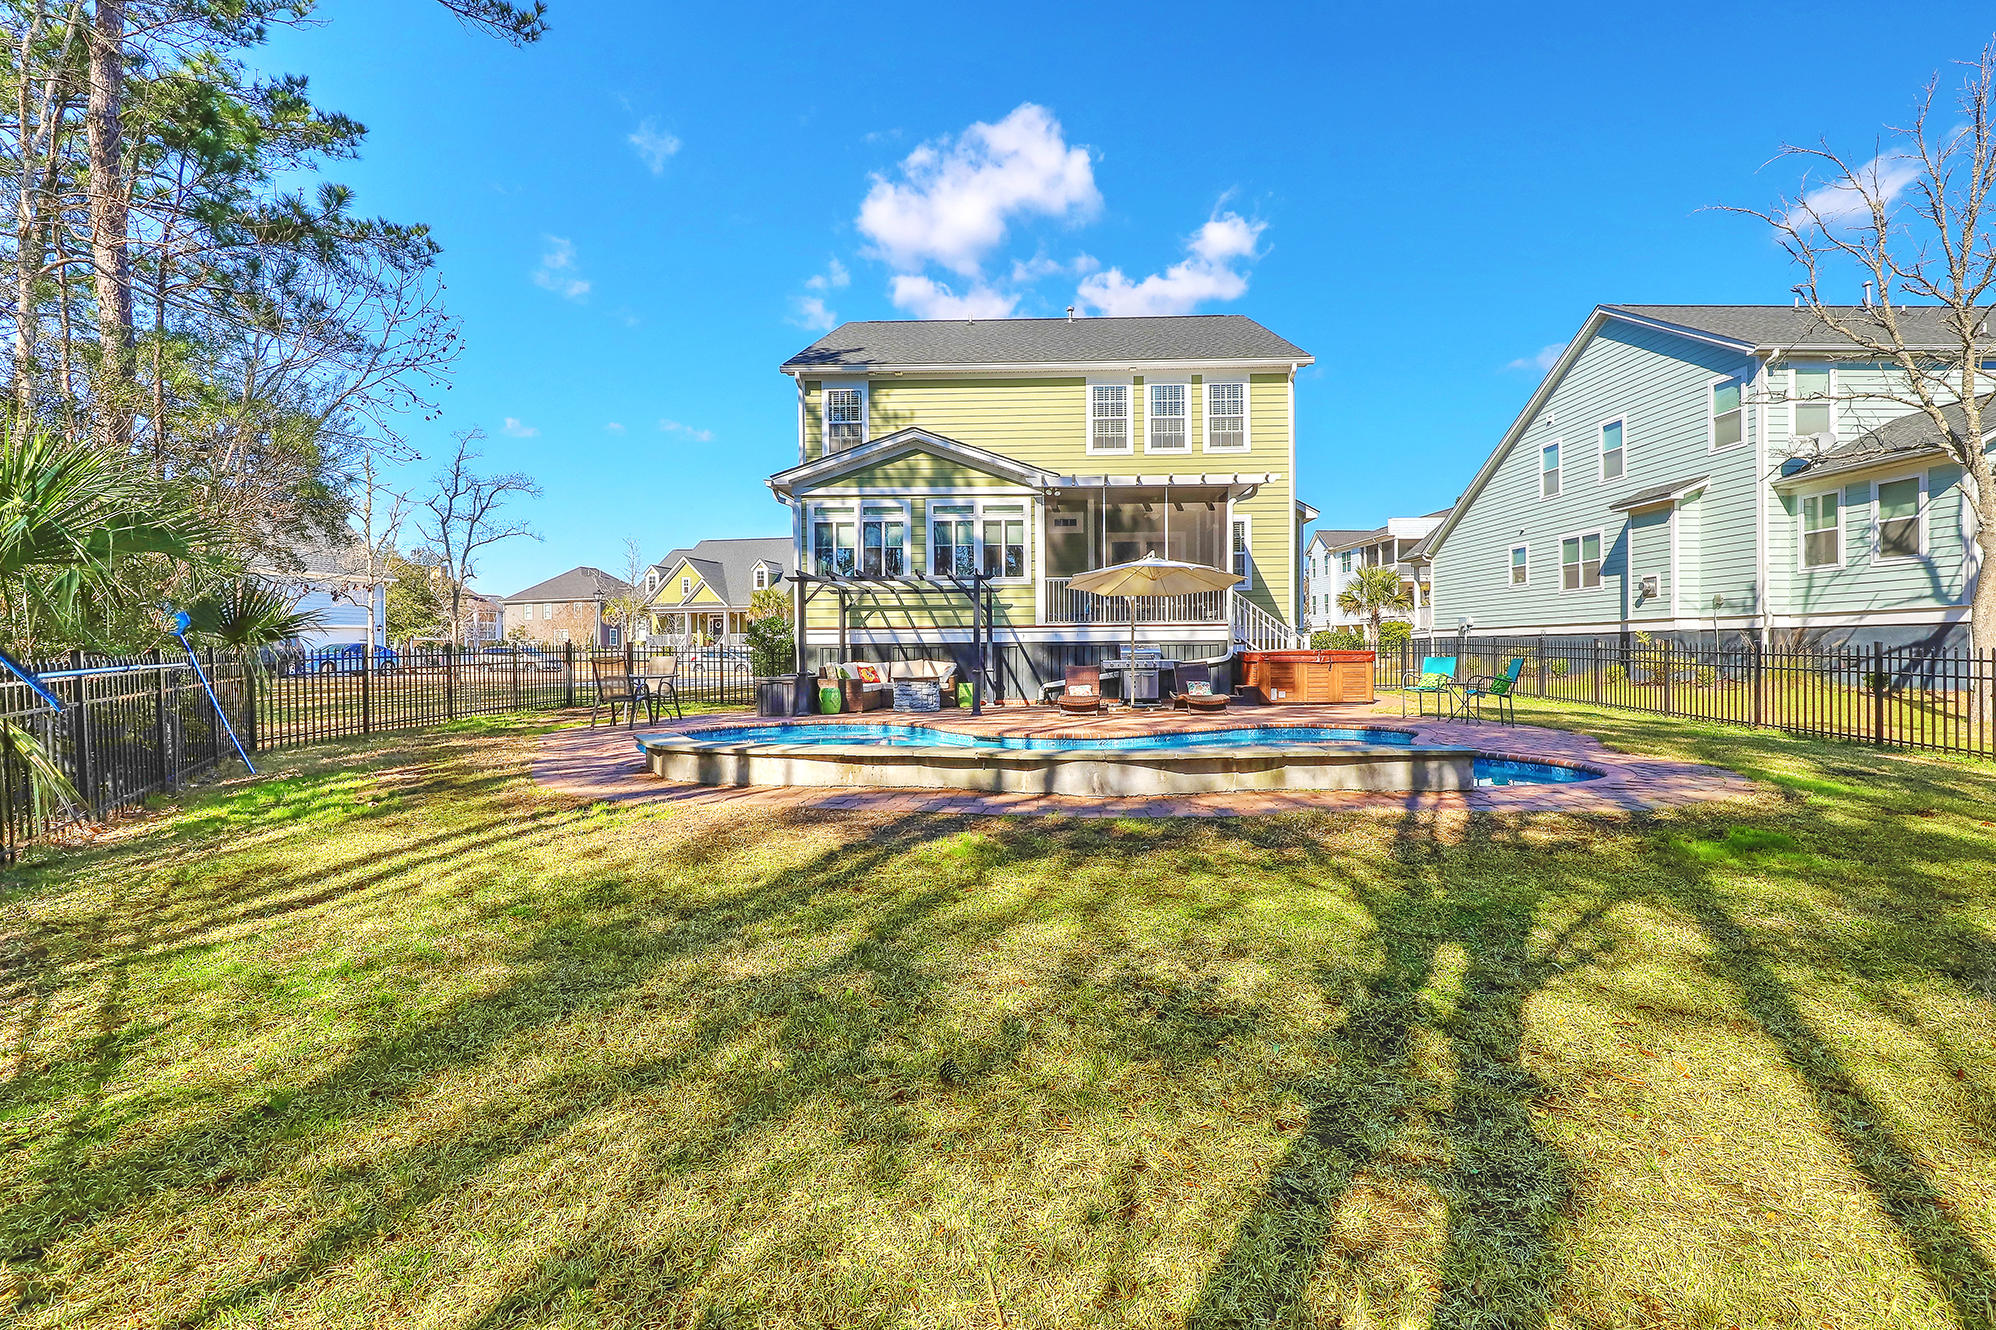 Rivertowne On The Wando Homes For Sale - 2105 Sandy Point, Mount Pleasant, SC - 26